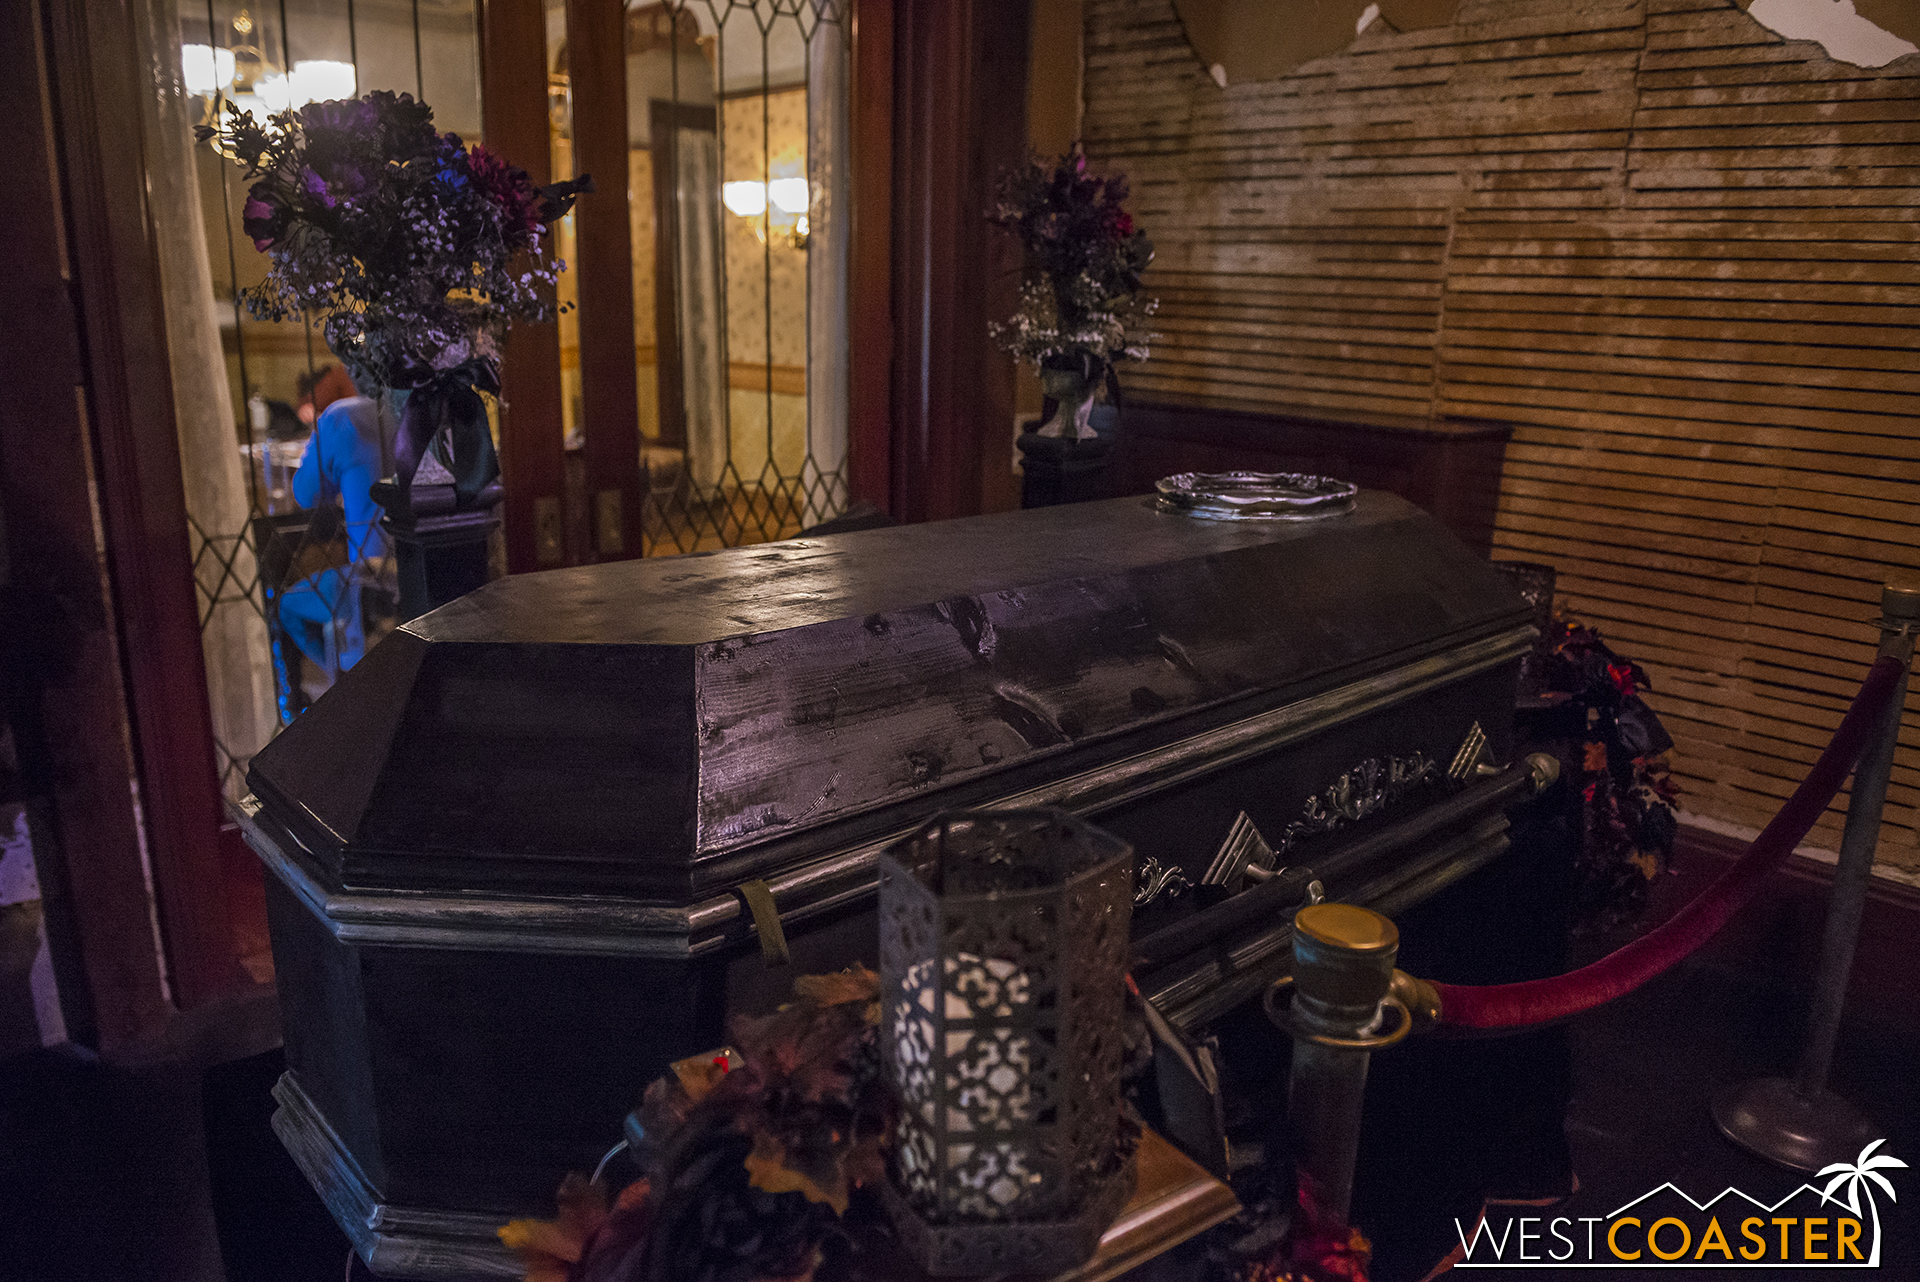 Another autumn special, this coffin definitely does not play a part during the daytime tour, but what mysteries does it hold at night...?